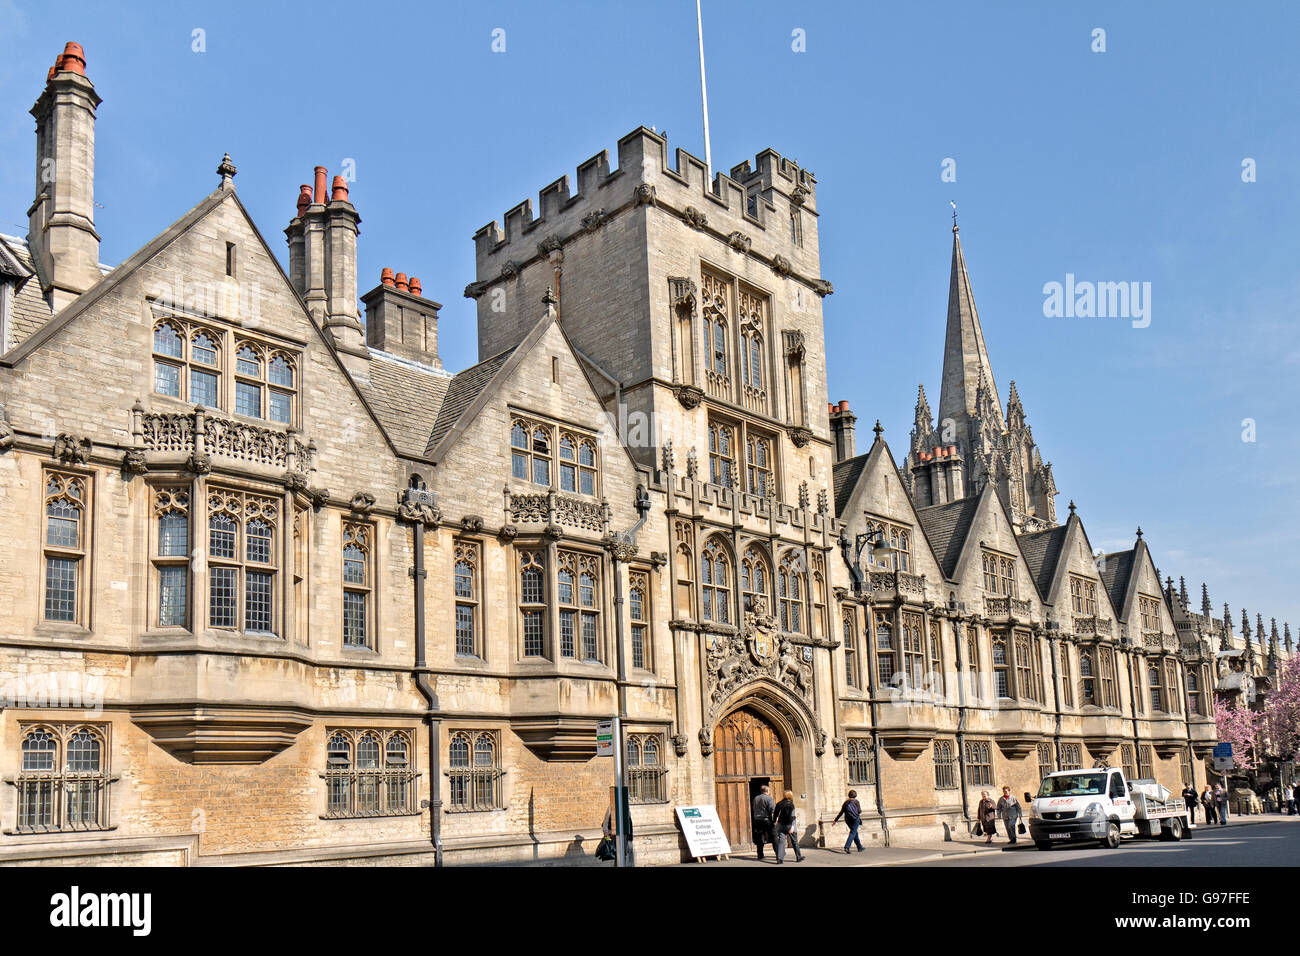 UK Oxford Brasenose College Facade - Stock Image